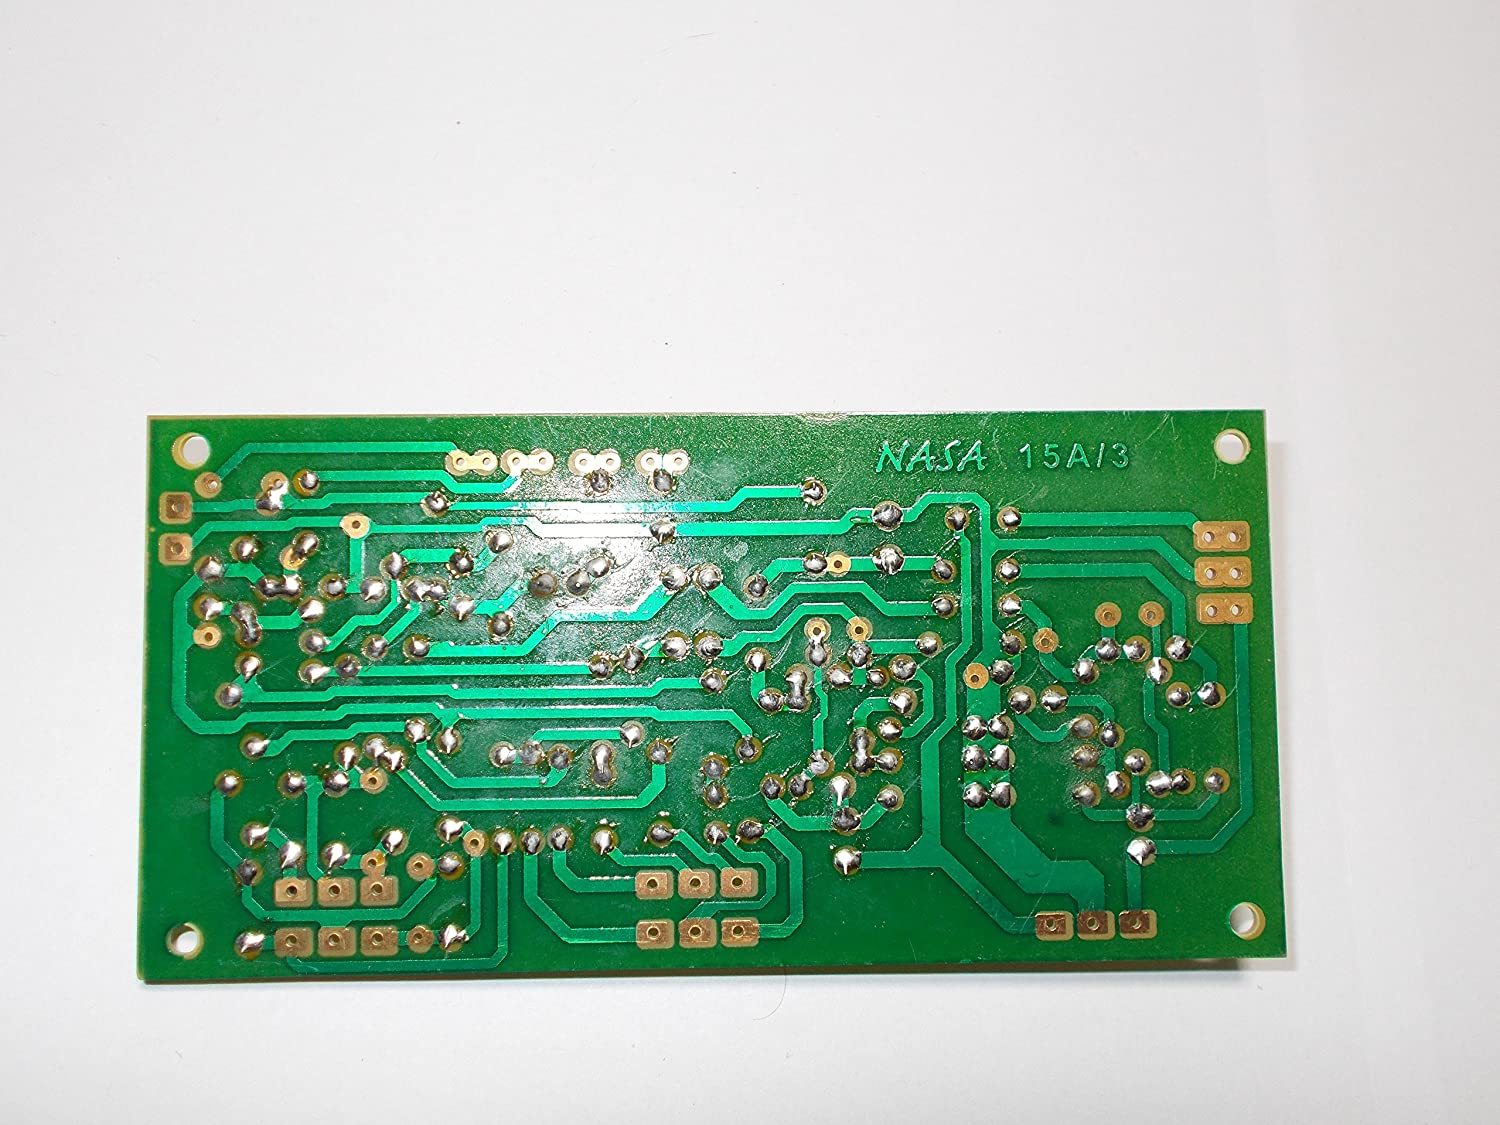 Soumik Electricals Bass Treble Volume Boardconnect And Control Without Any Ic Transistor Electronics